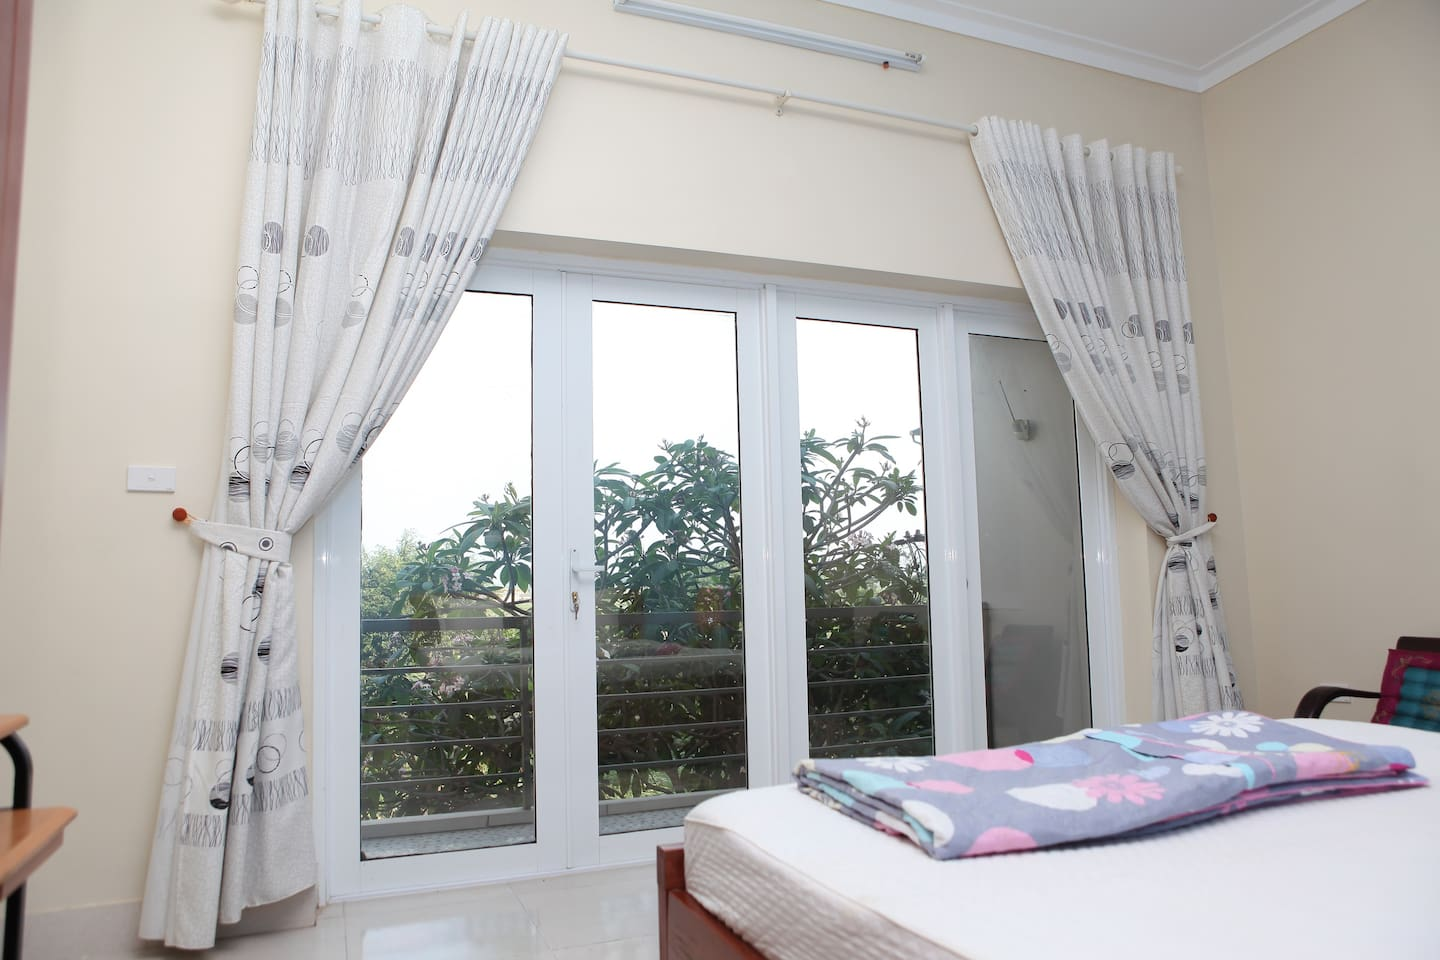 Comfortable clean room with nice views